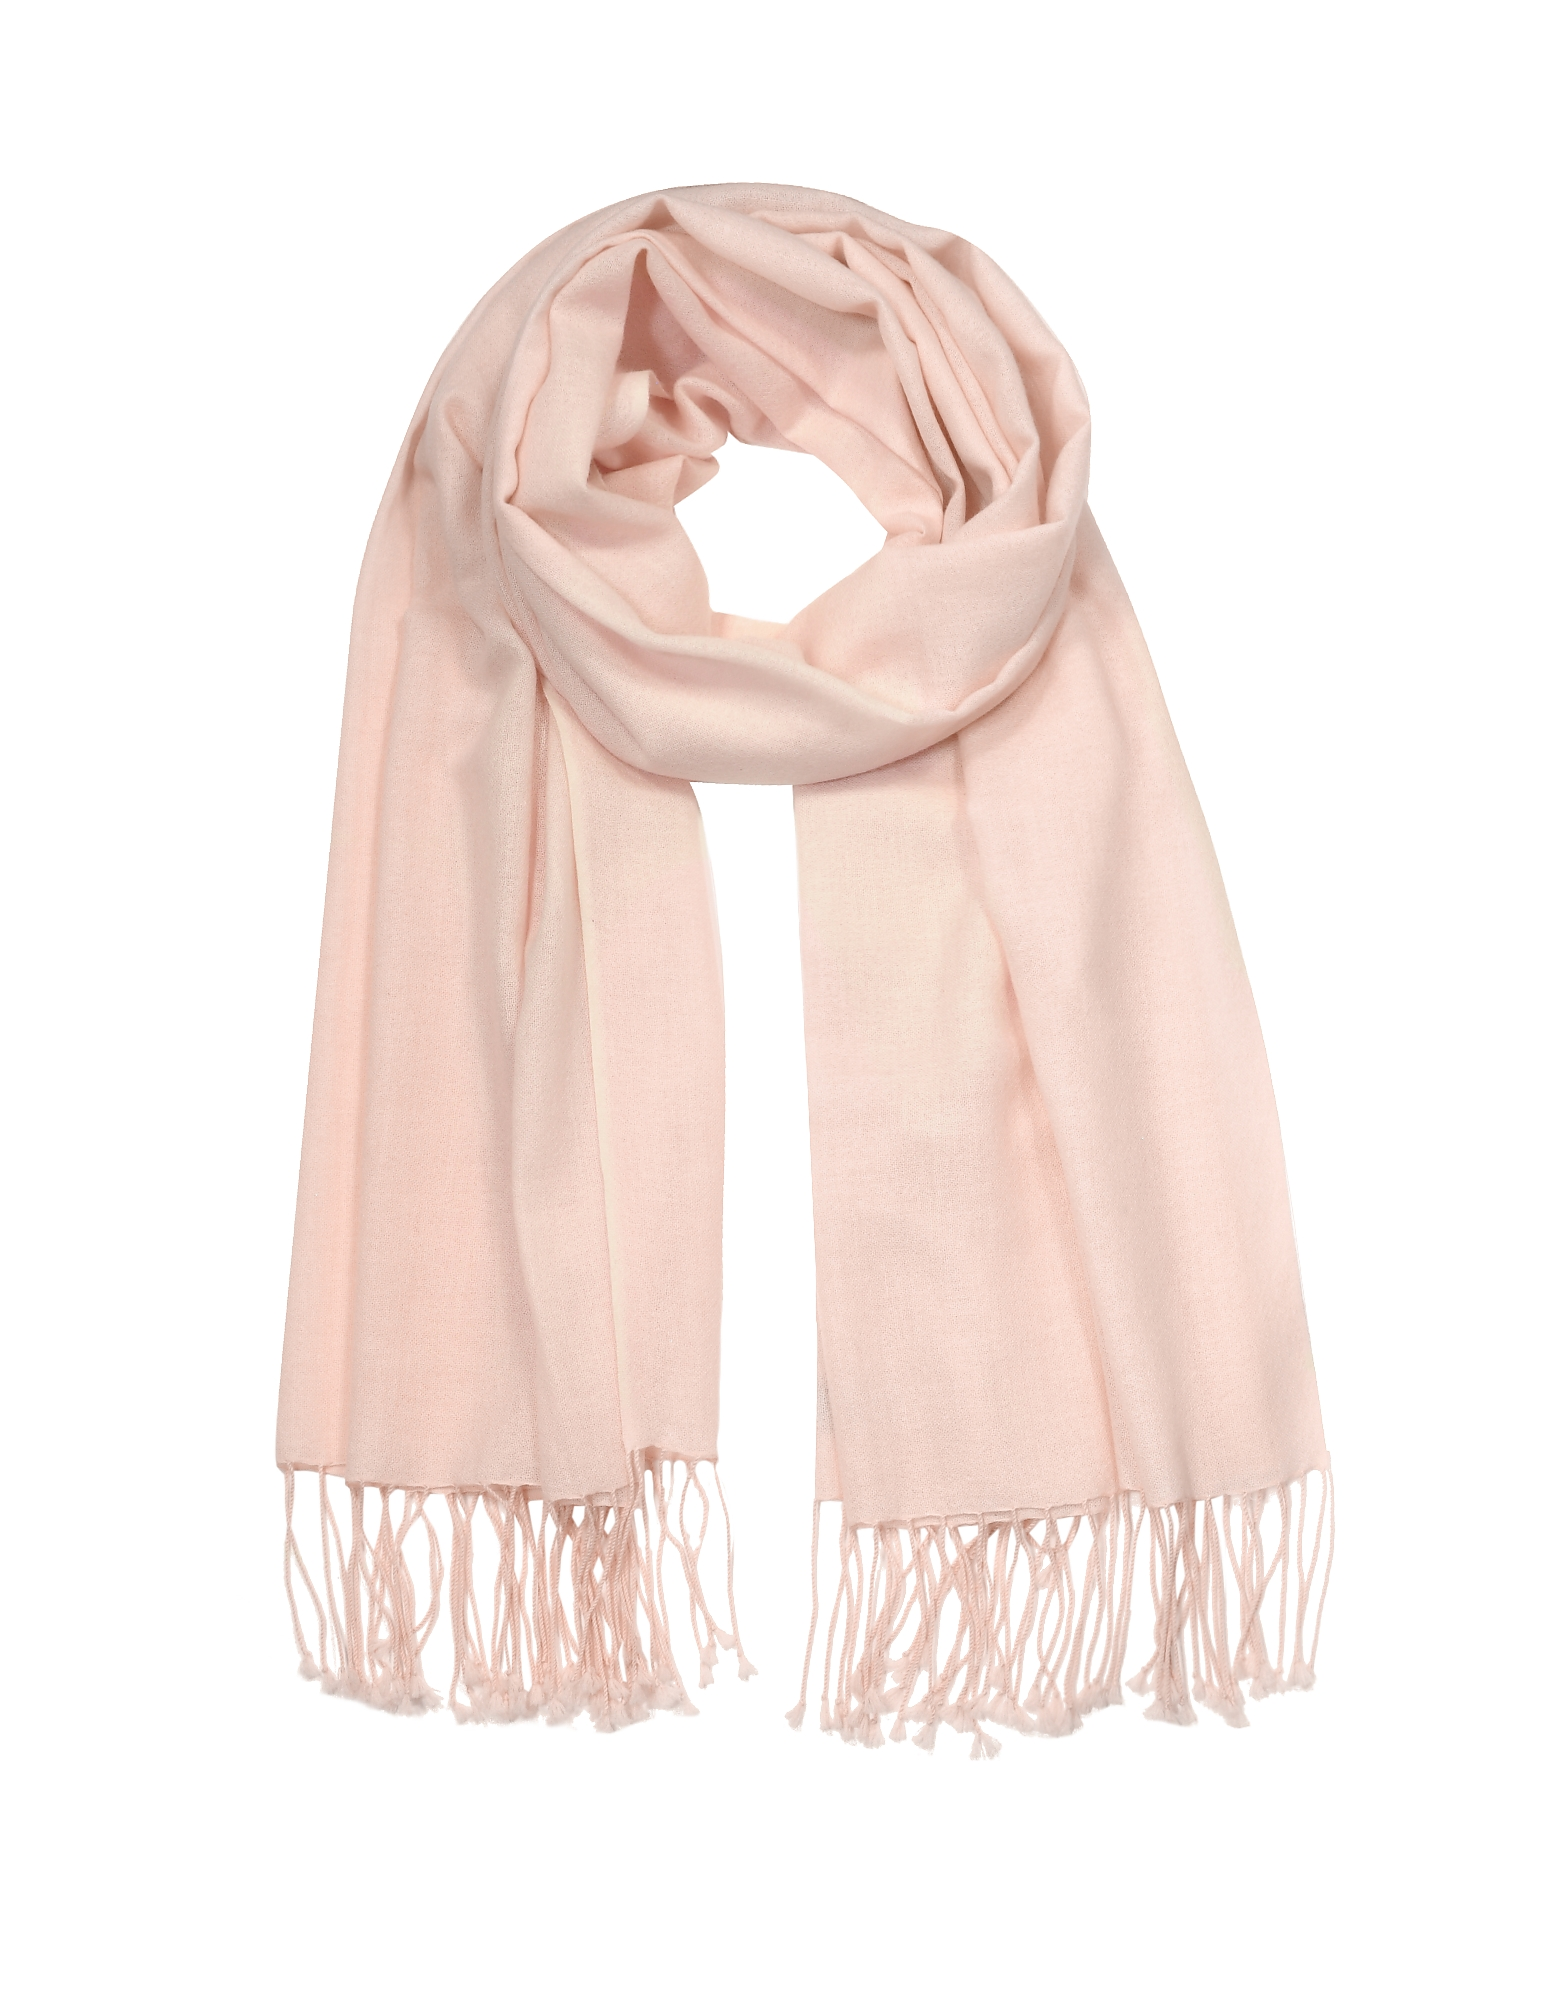 Forzieri Designer Scarves, Blossom Pink Silk and Pashmina Shawl